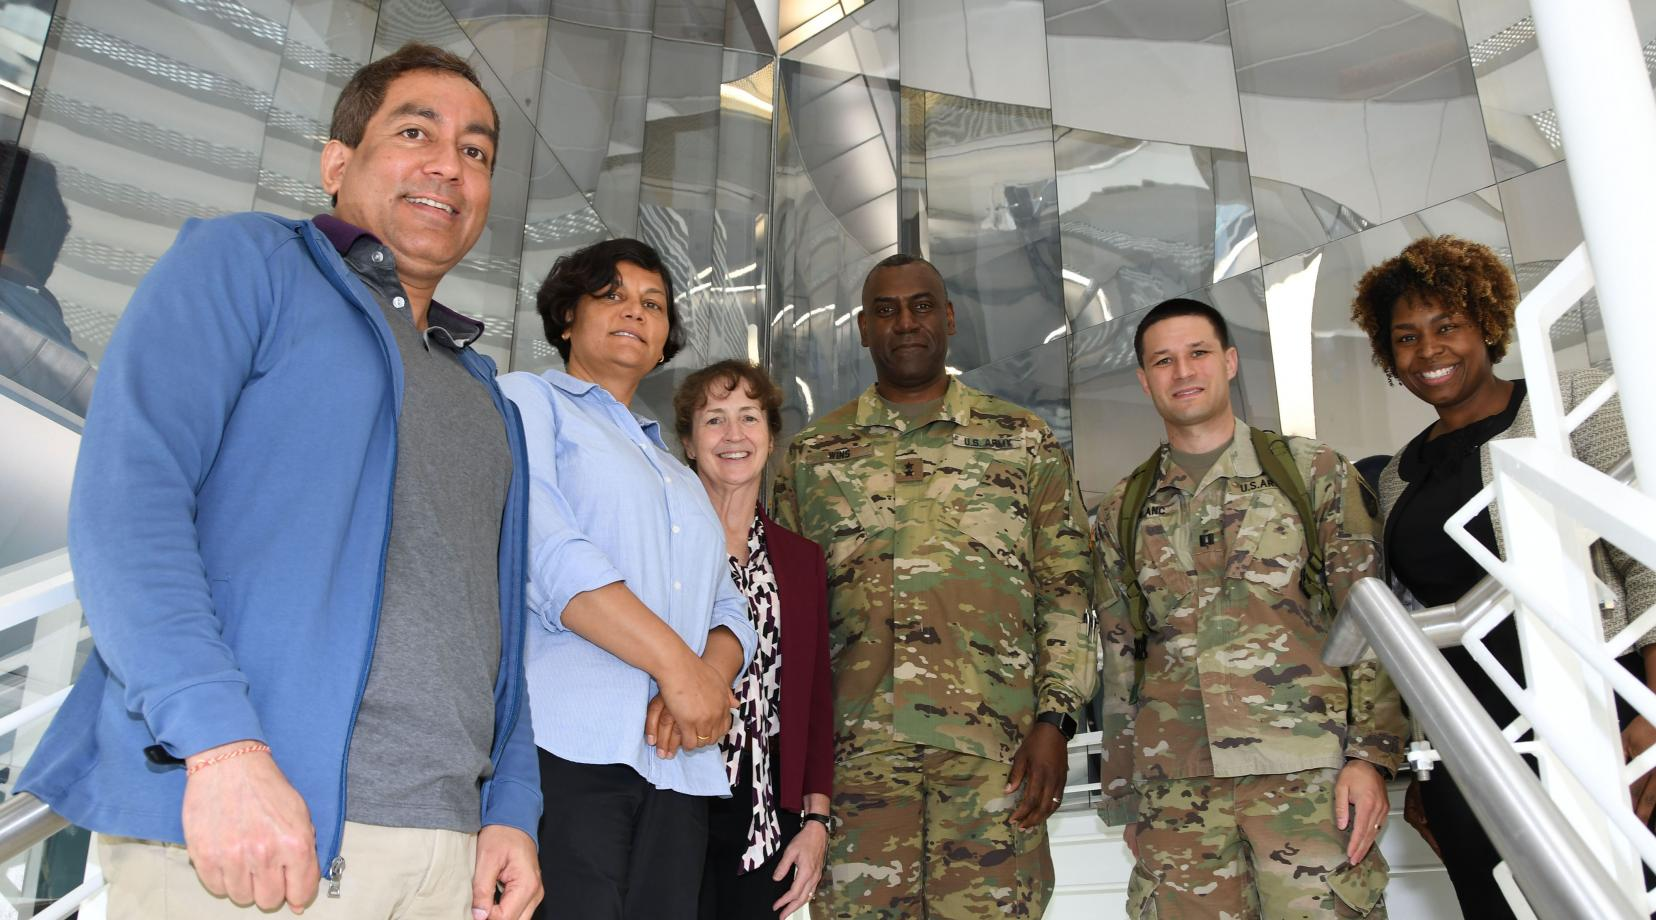 (L-r) DSU's Dr. Gour Pati, Dr. Renu Tripathi, Dr. Melissa Harrington with Maj. Gen. Cedric Wins, commanding general of the U.S. Army Research Development Engineering Command, along with his staff Capt. Joshua Blanc and Dr. Patrice Collins, who earned her Ph.D. at DSU.